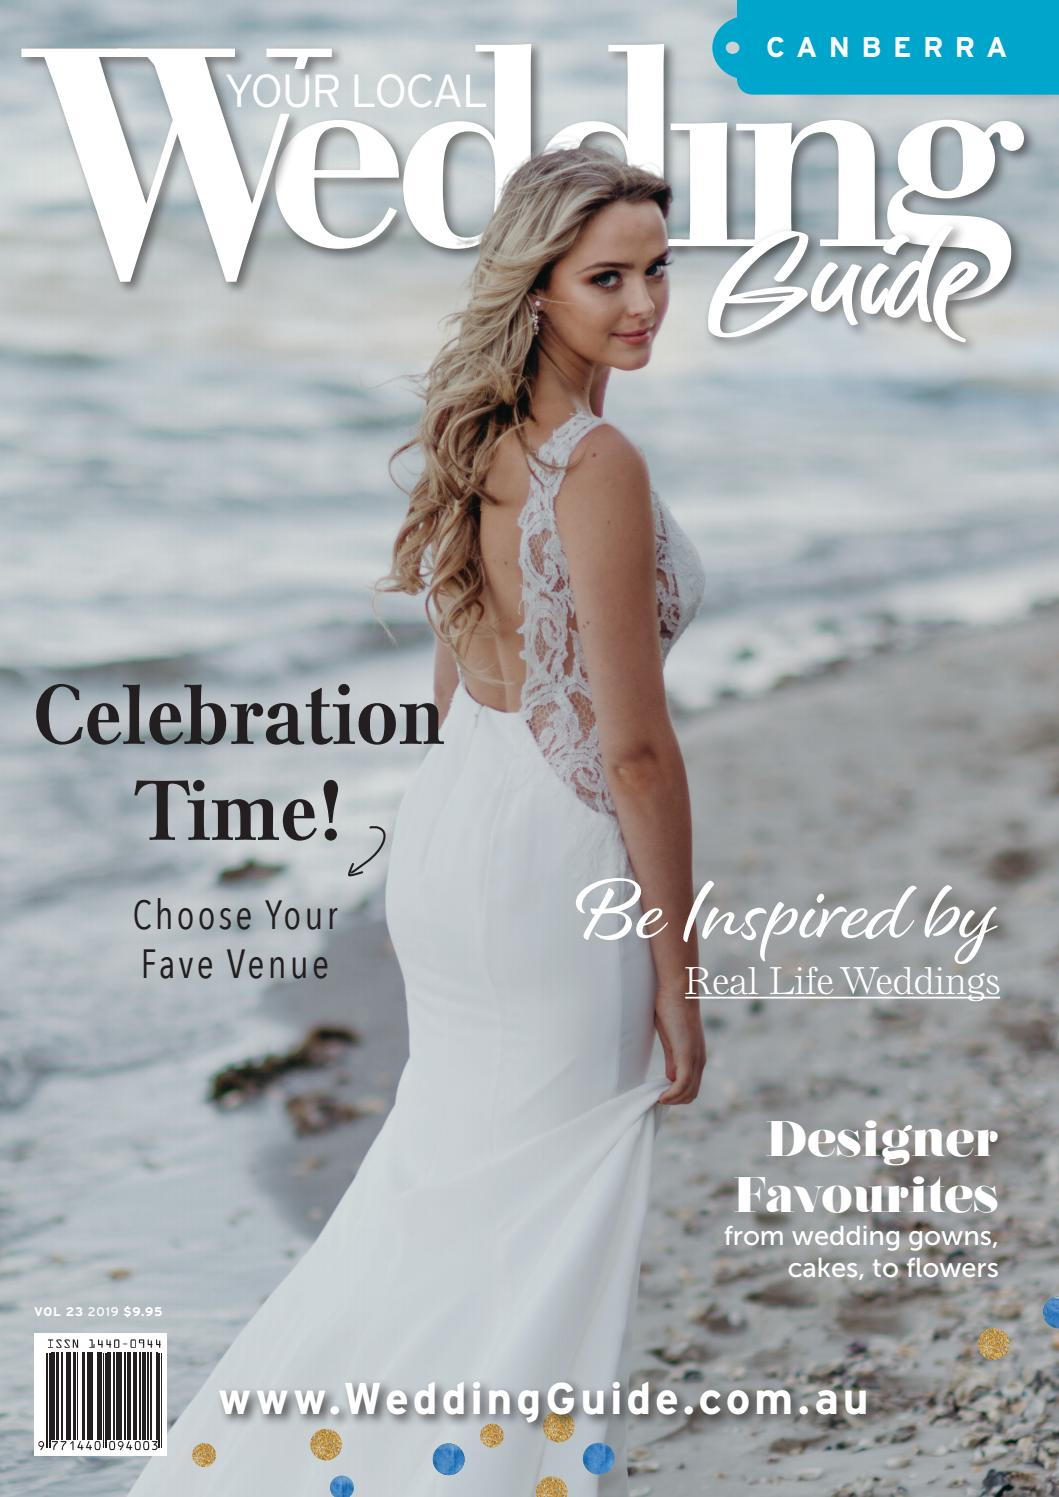 9af74a86e30 Your Local Wedding Guide Canberra 2019 by Your Local Wedding Guide - issuu